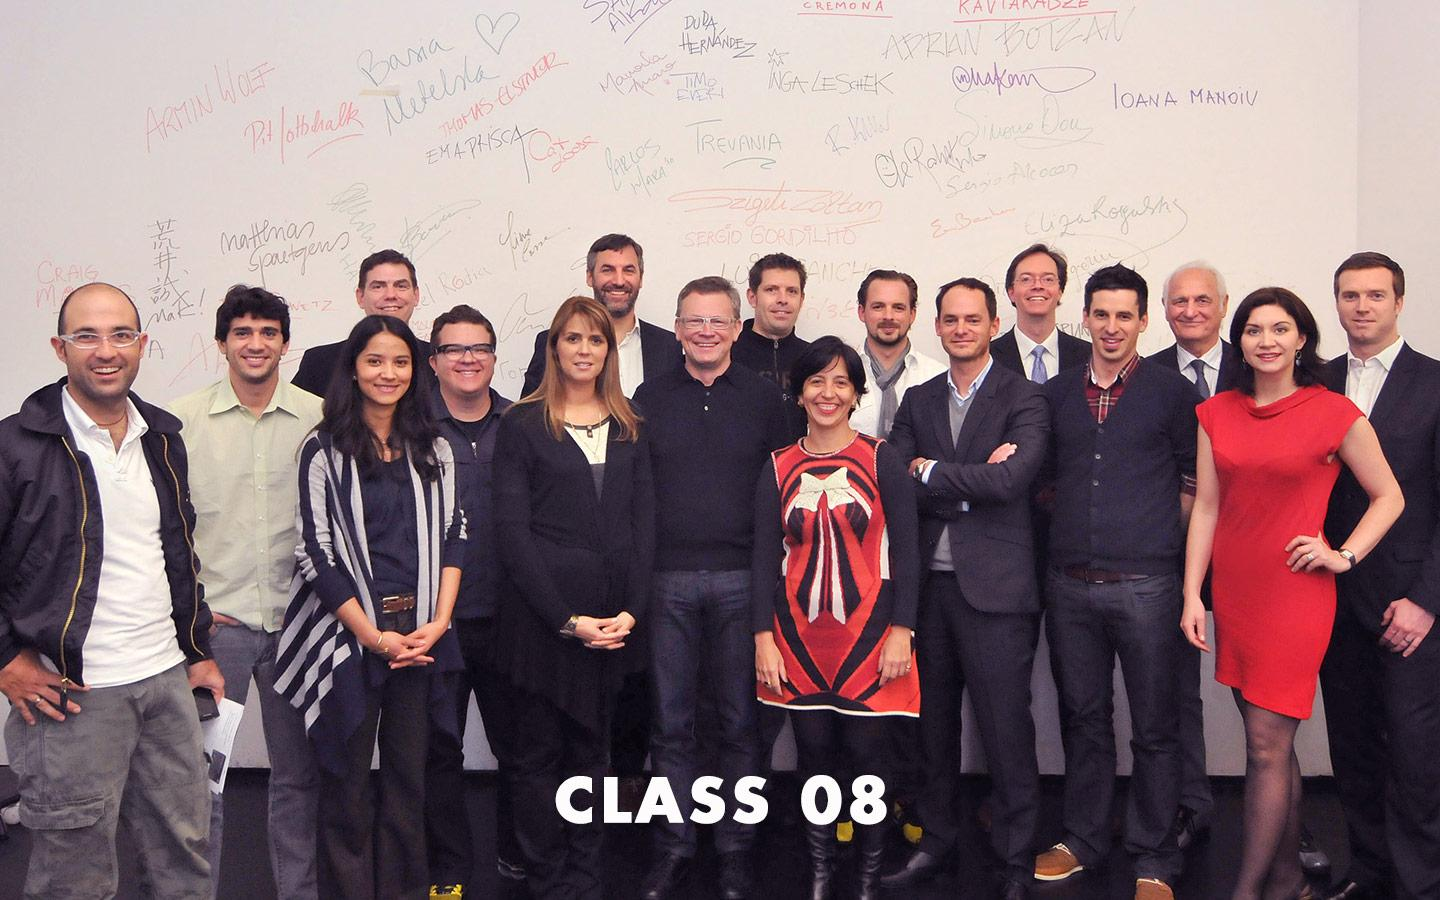 Class Picture EMBA Class 08